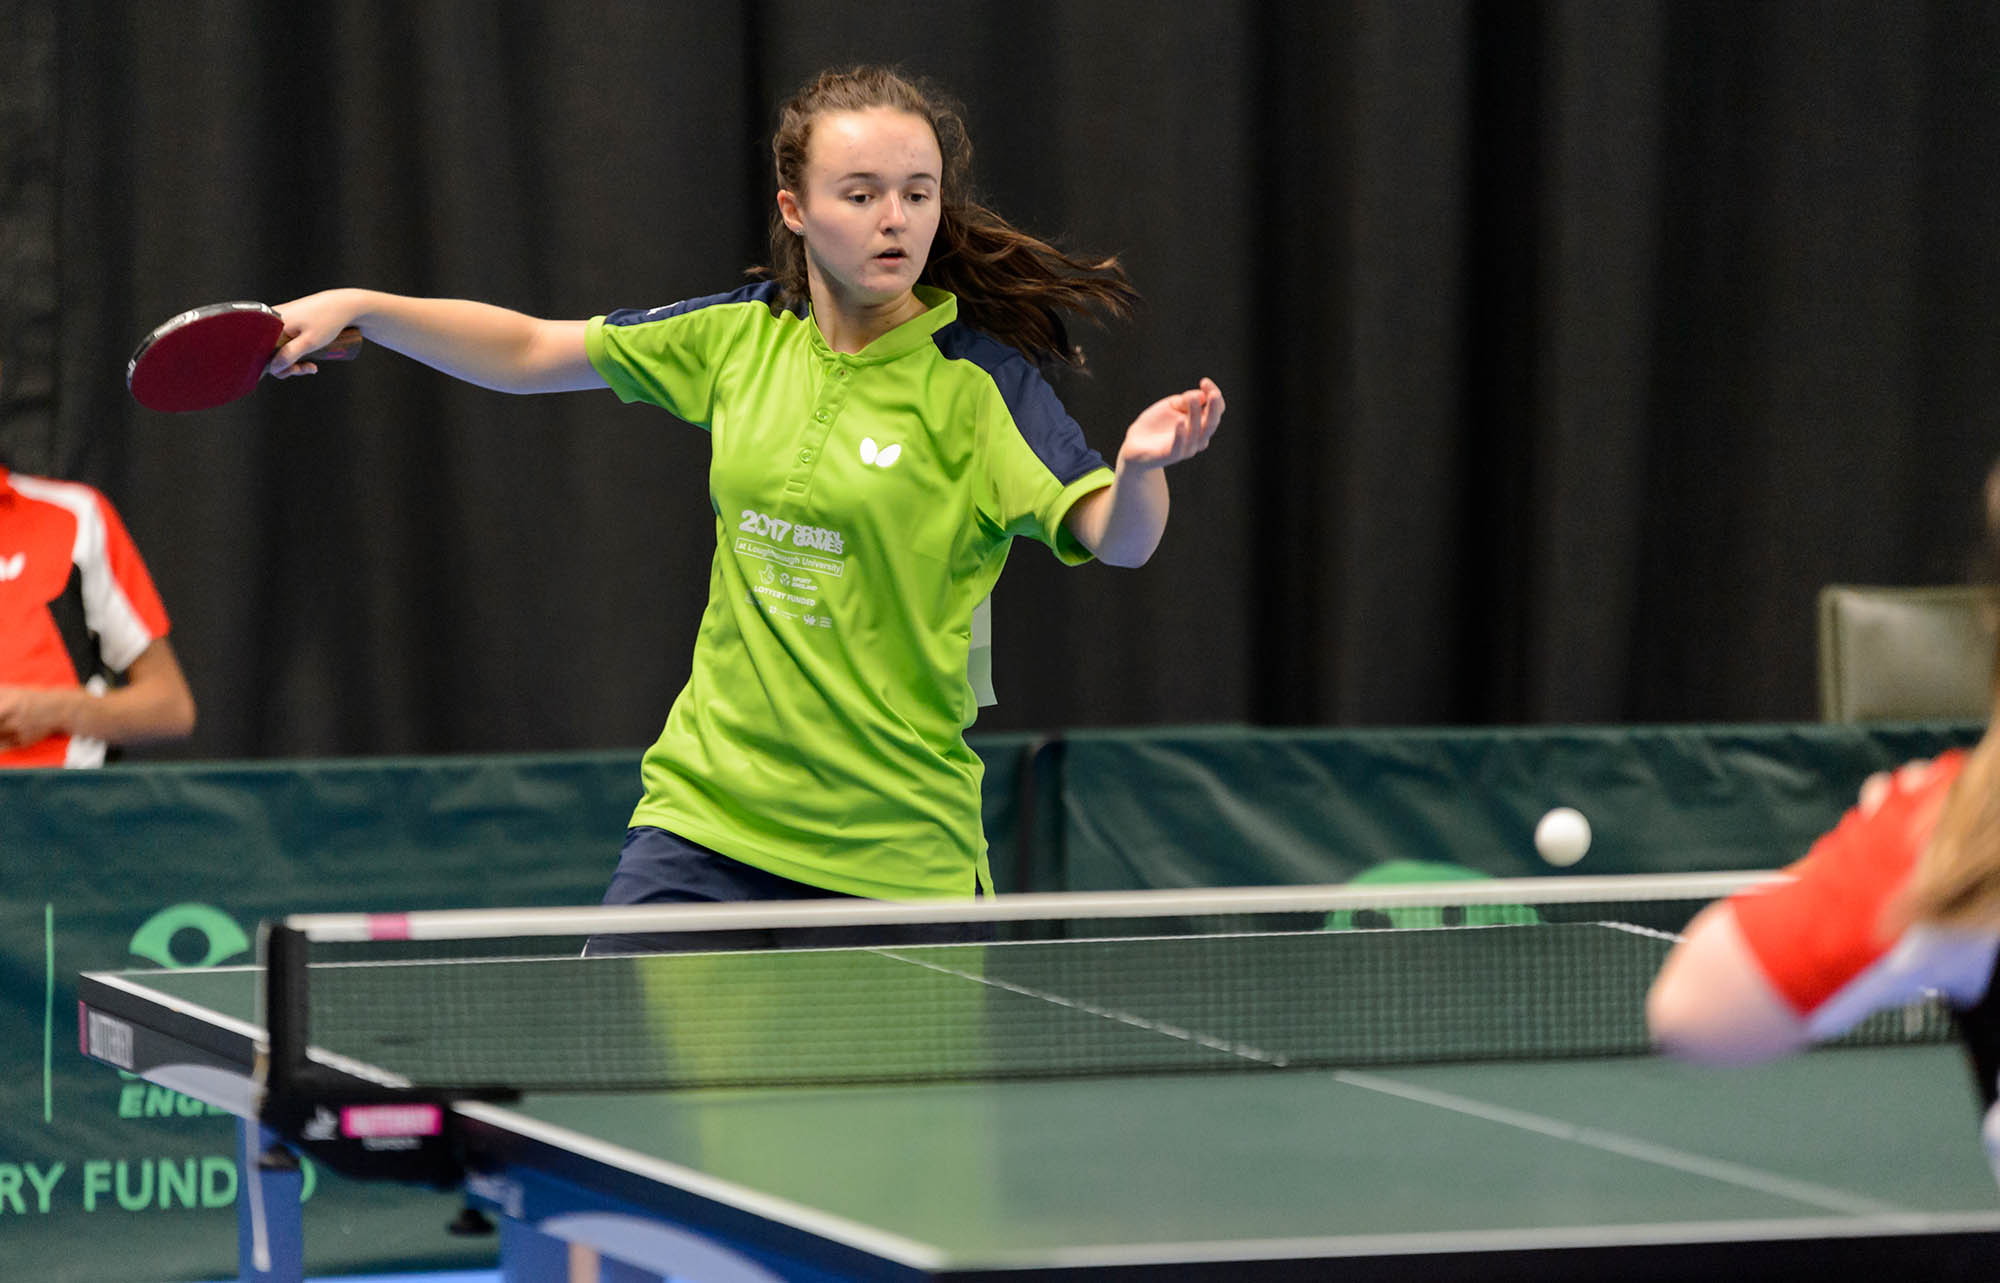 girl playing forehand table tennis action